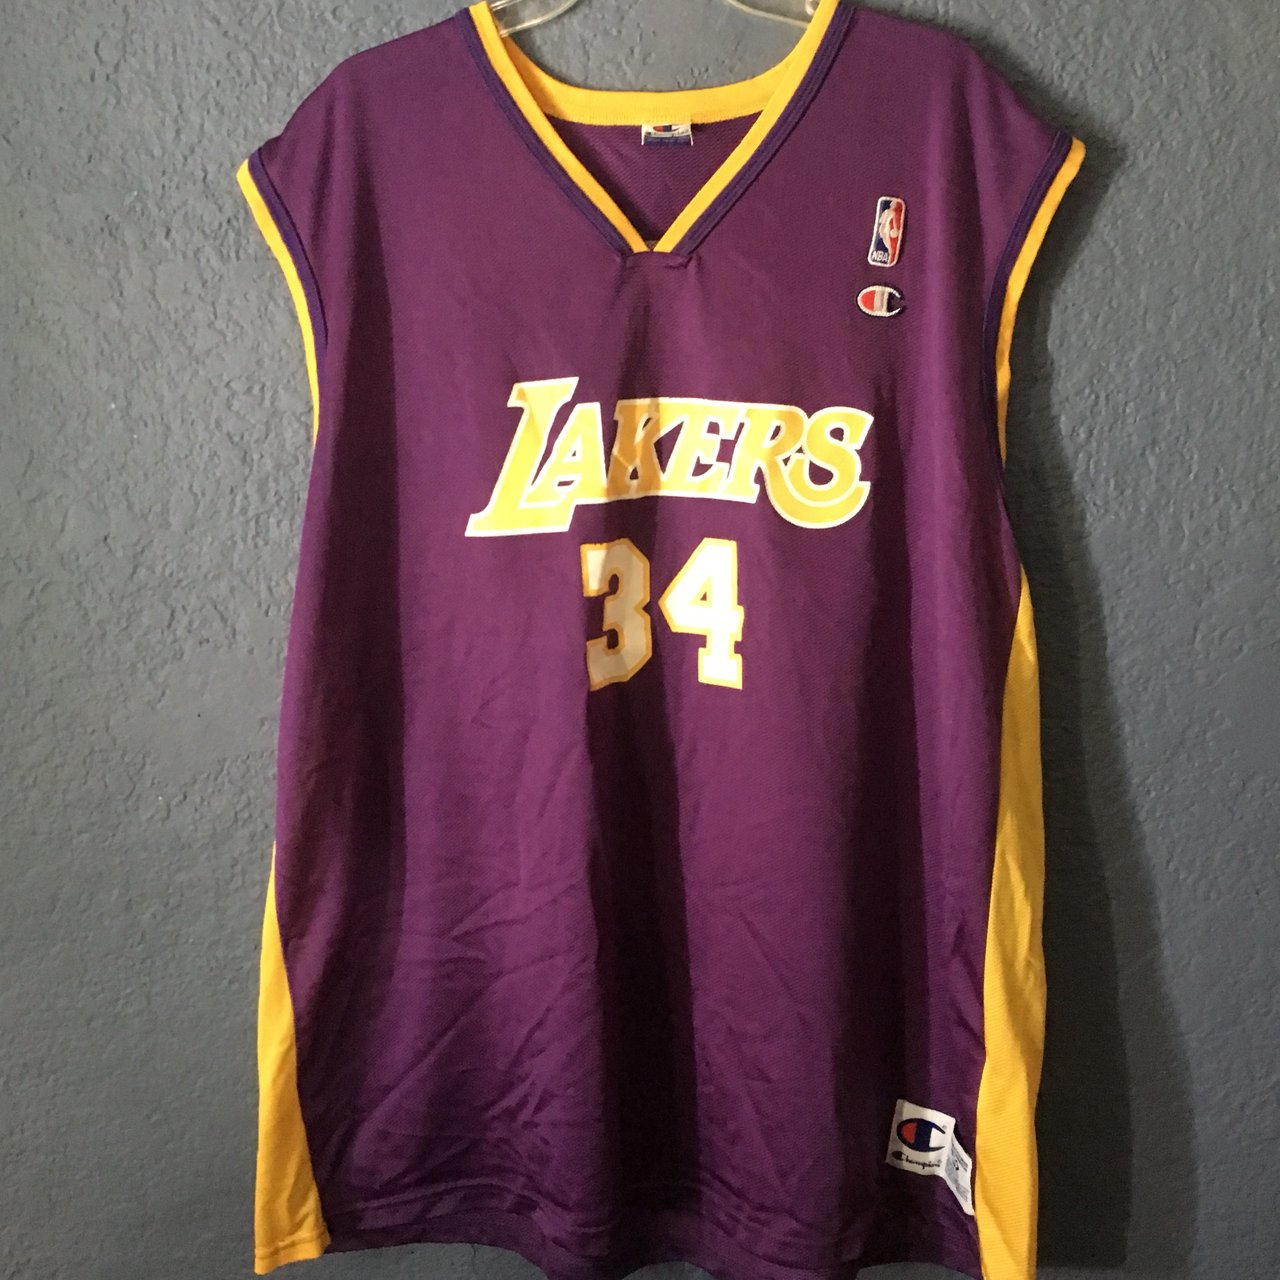 Vintage 90s Champion Los Angeles Lakers Shaquille O Neal 52 - Depop cb019eea2